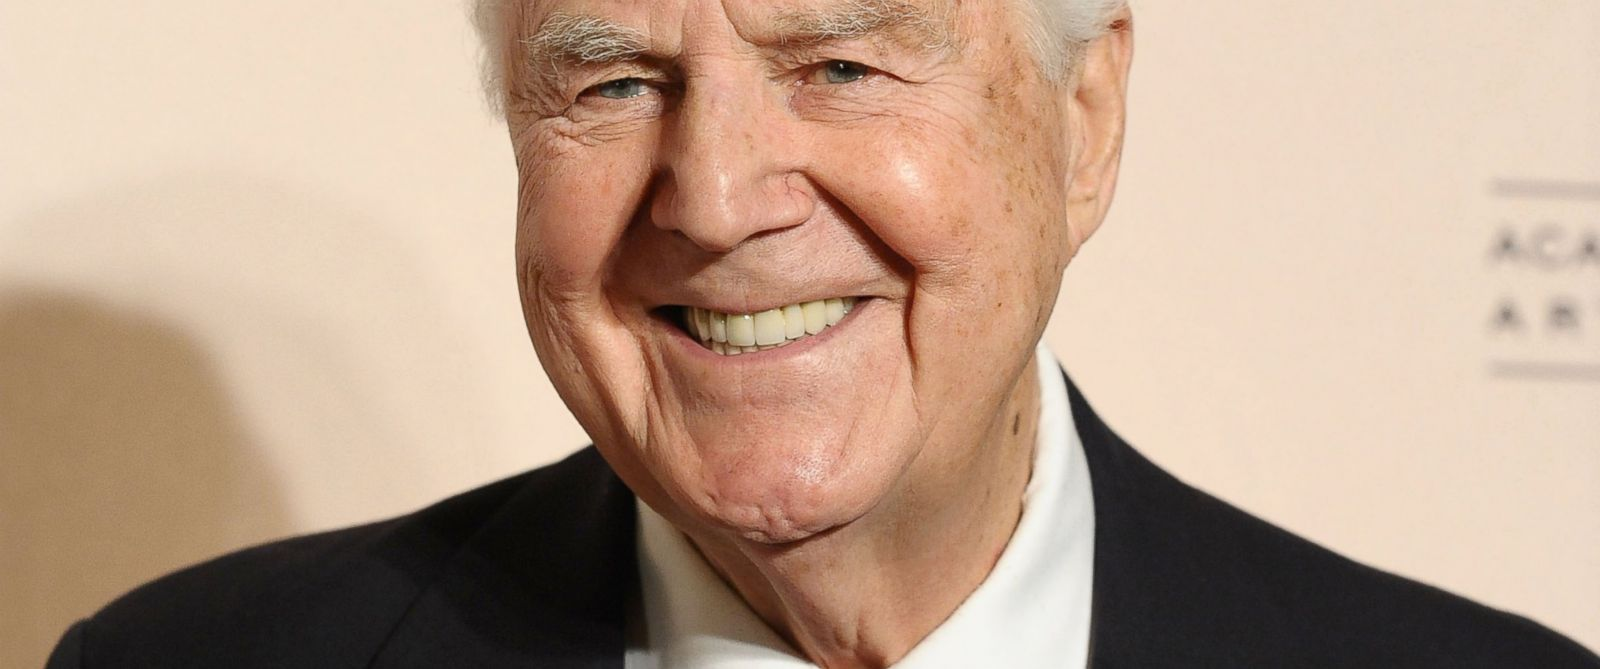 PHOTO: Don Pardo attends the Academy of Televisions 19th annual Hall of Fame induction gala on Jan. 20, 2010 in Beverly Hills, Calif.